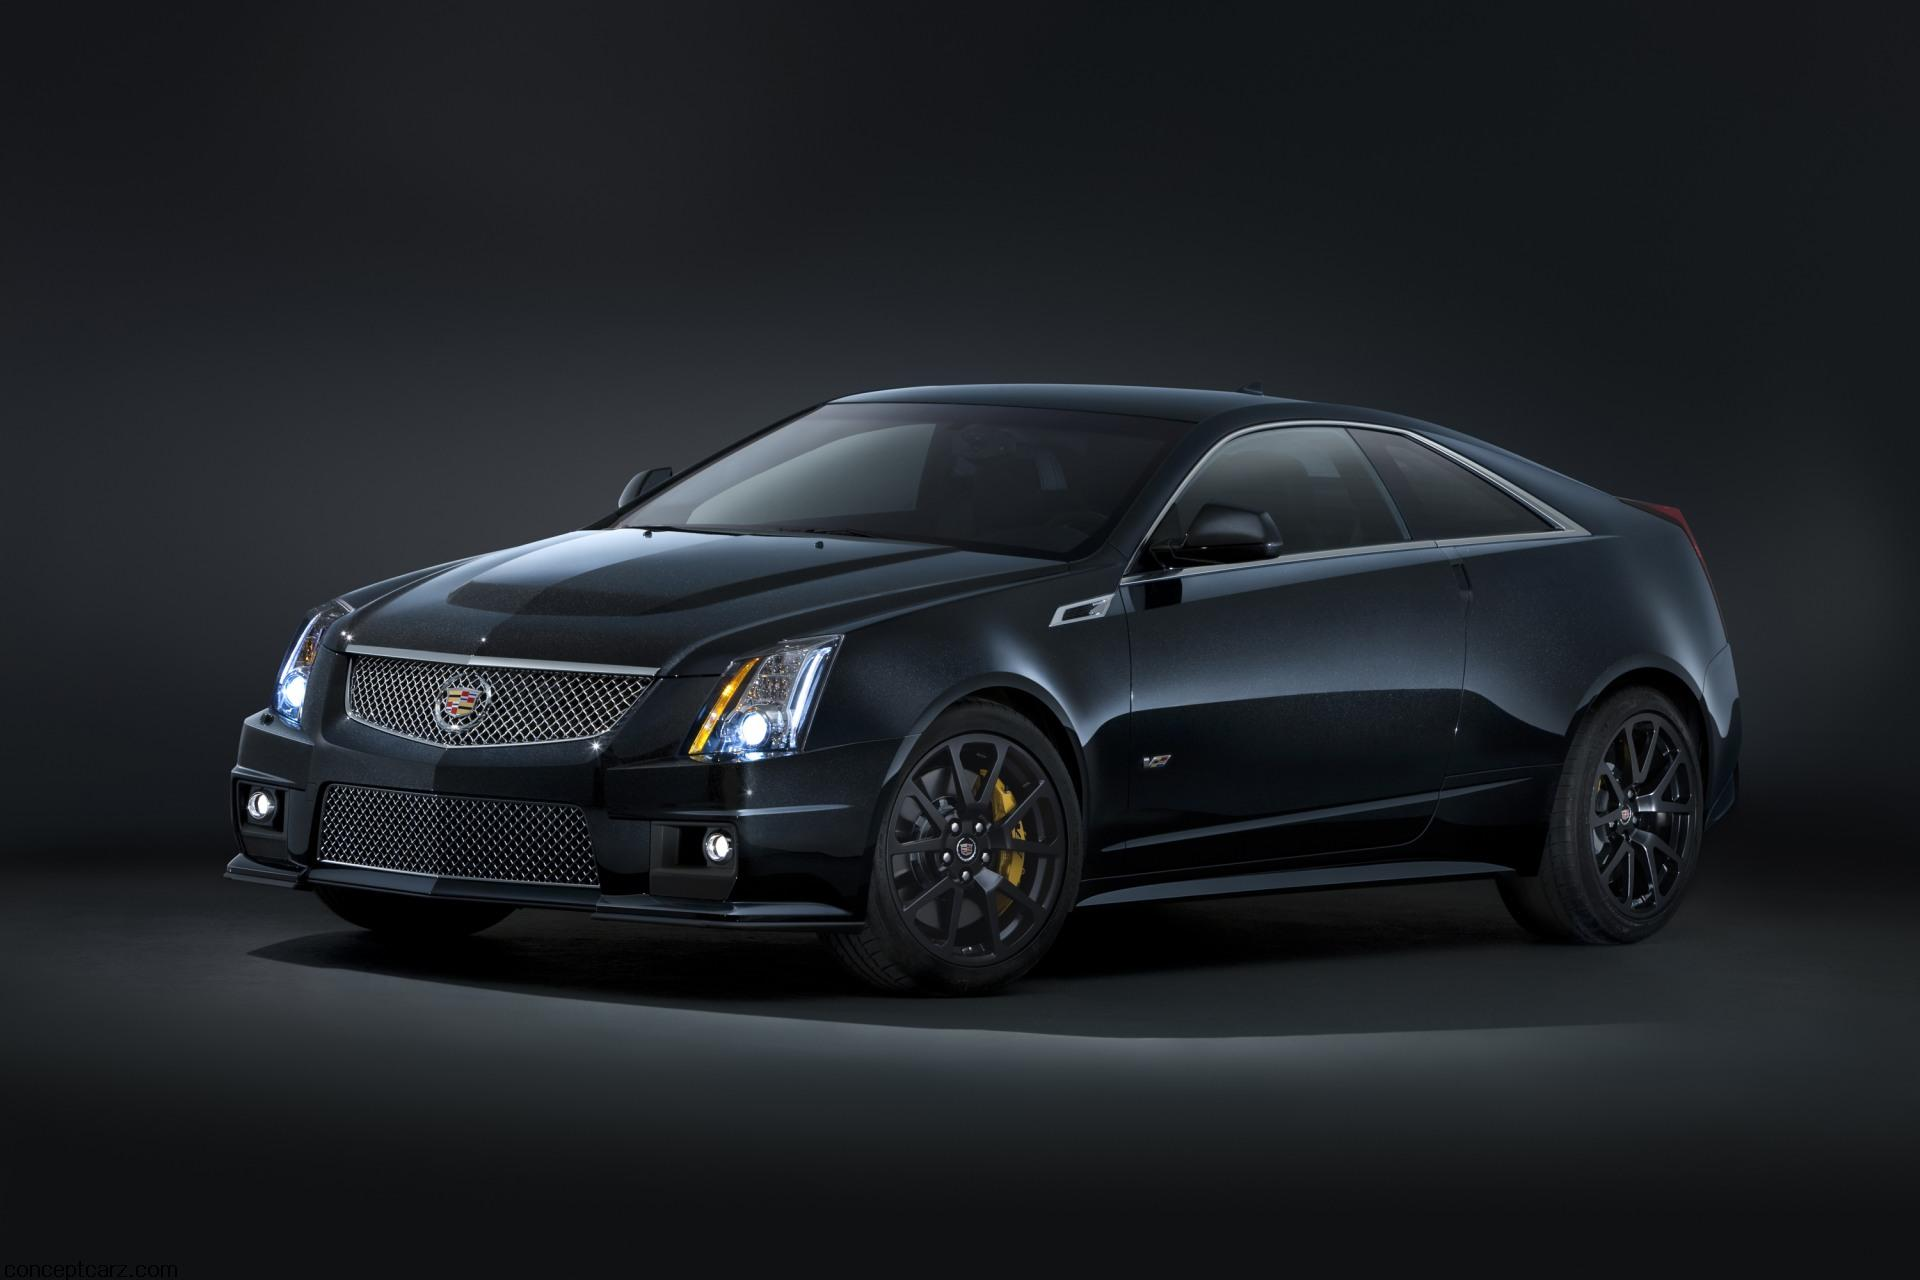 2011 cadillac cts v black diamond edition. Black Bedroom Furniture Sets. Home Design Ideas